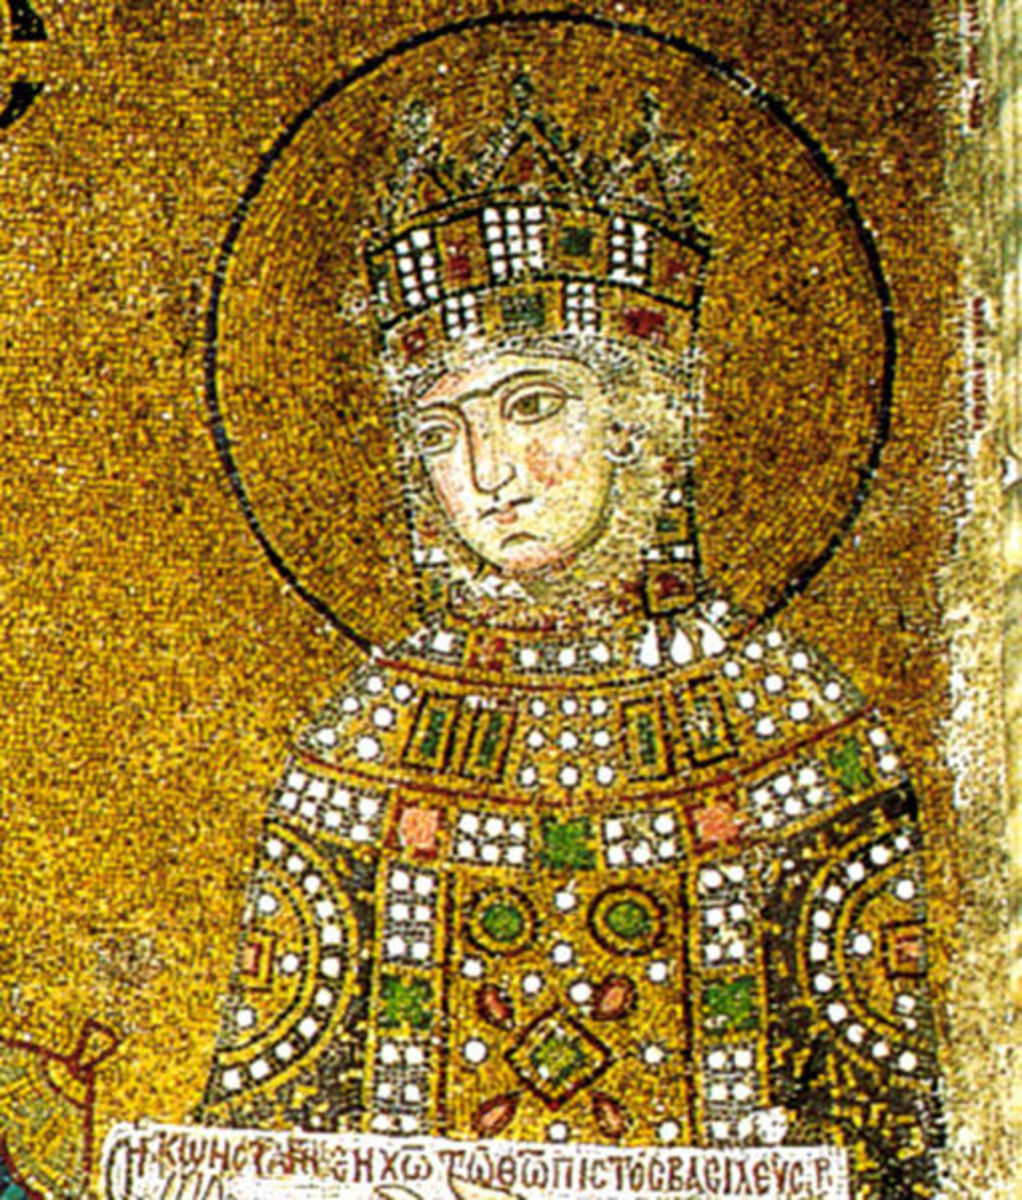 The Empress Zoe, said to have been 'taken' with Harald Sigurdsson - she had three husbands in quick succession